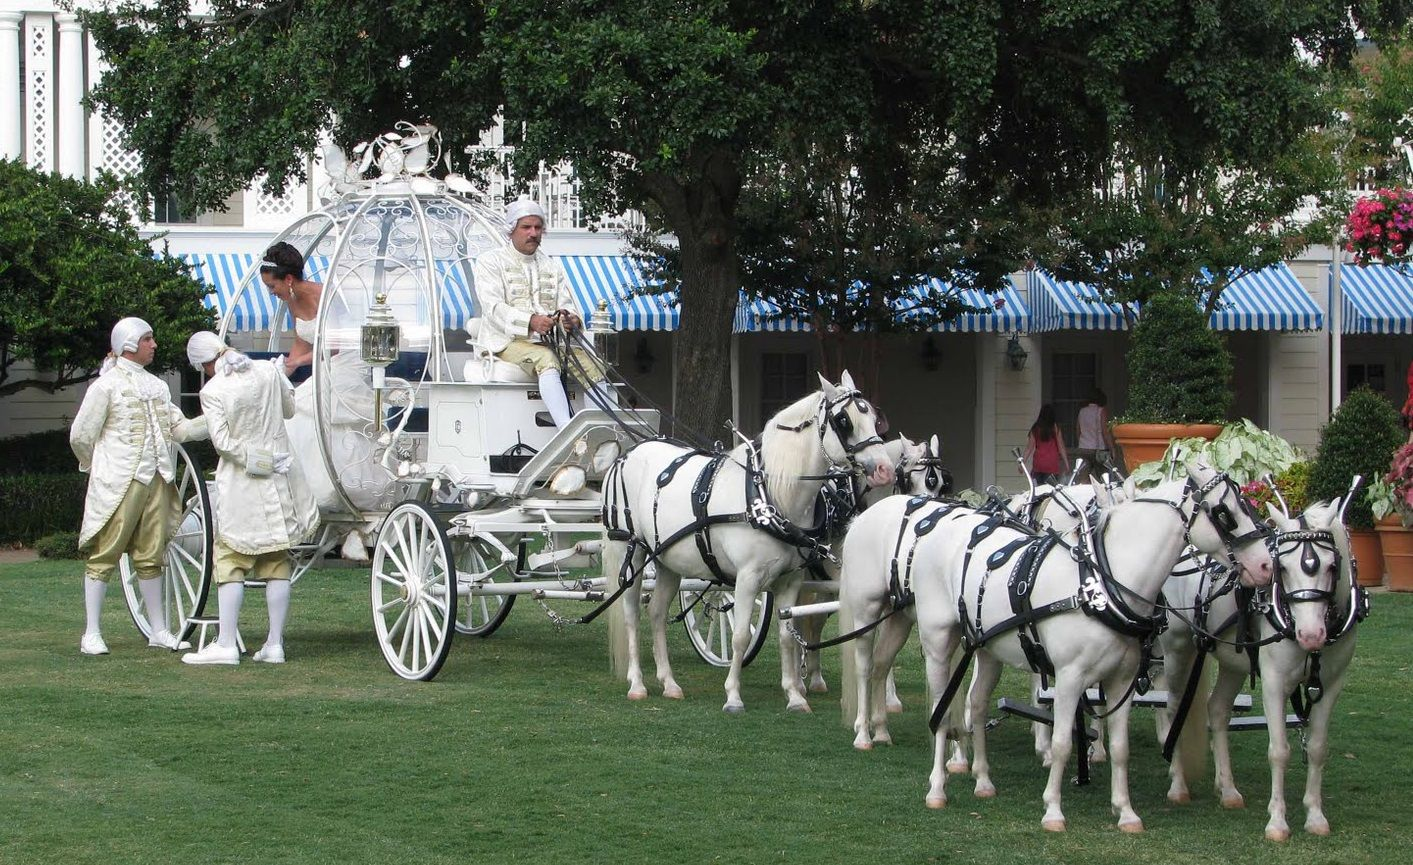 Disney world wedding how much does it cost to have a